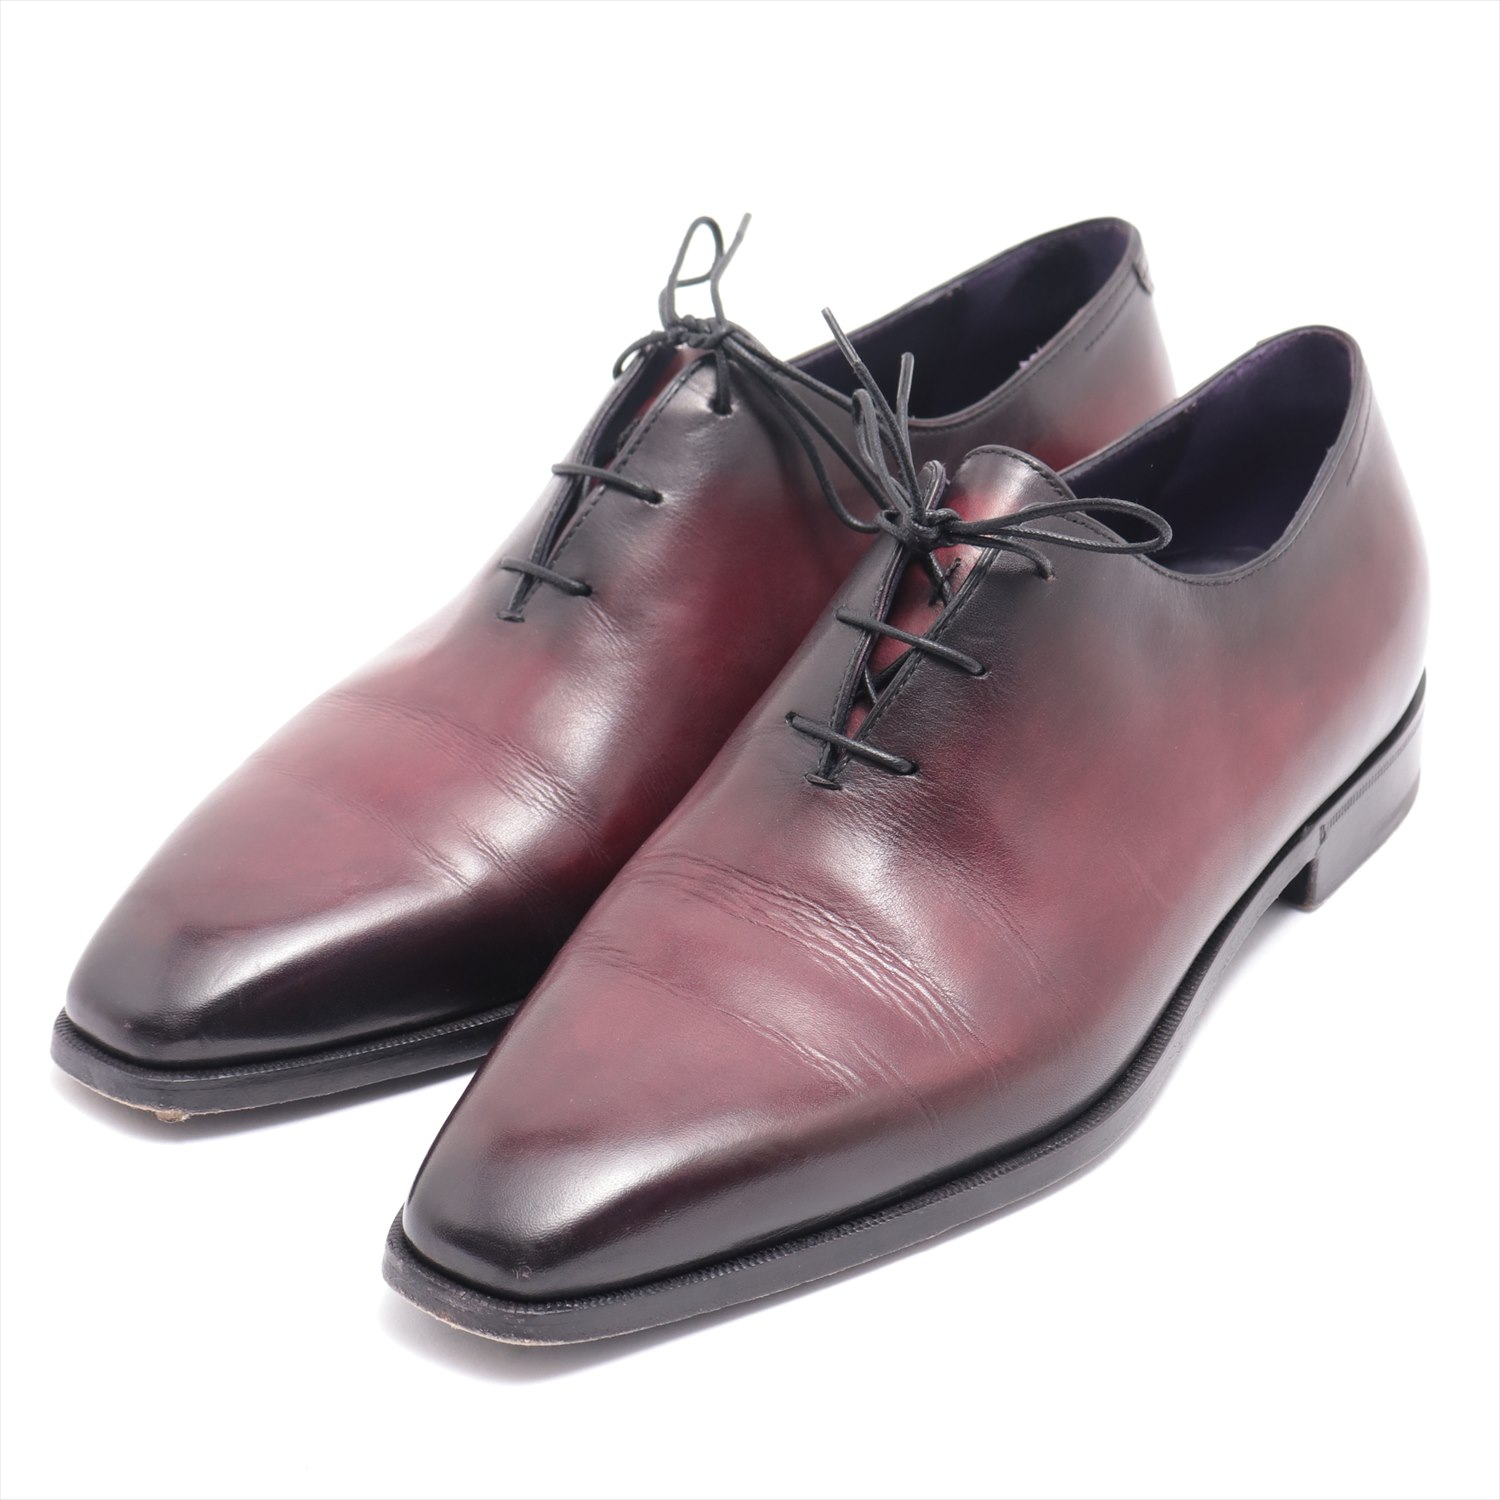 Used article] Berluti leather shoes 9